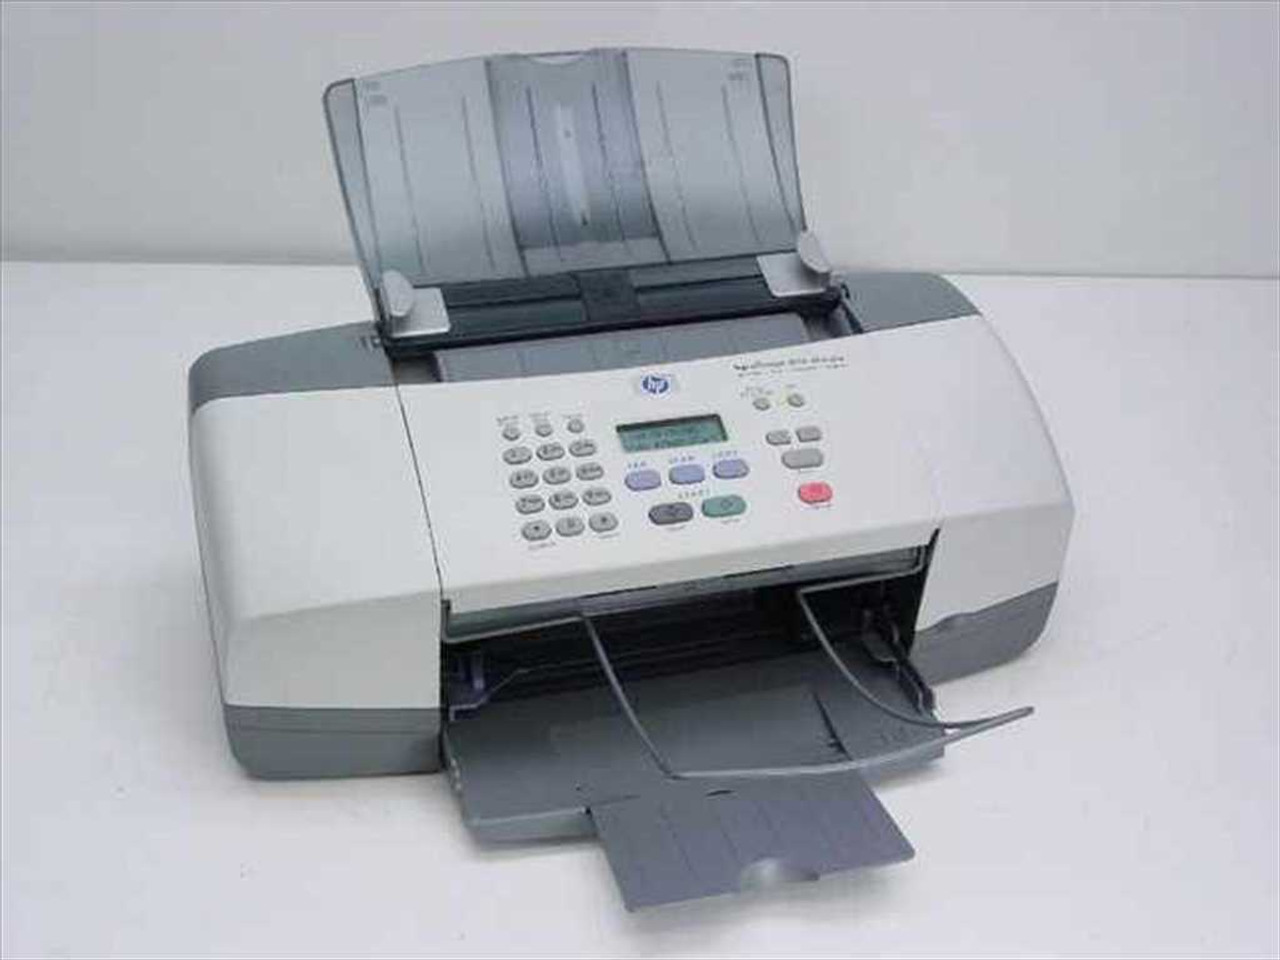 Hp officejet-4110-user-manual.